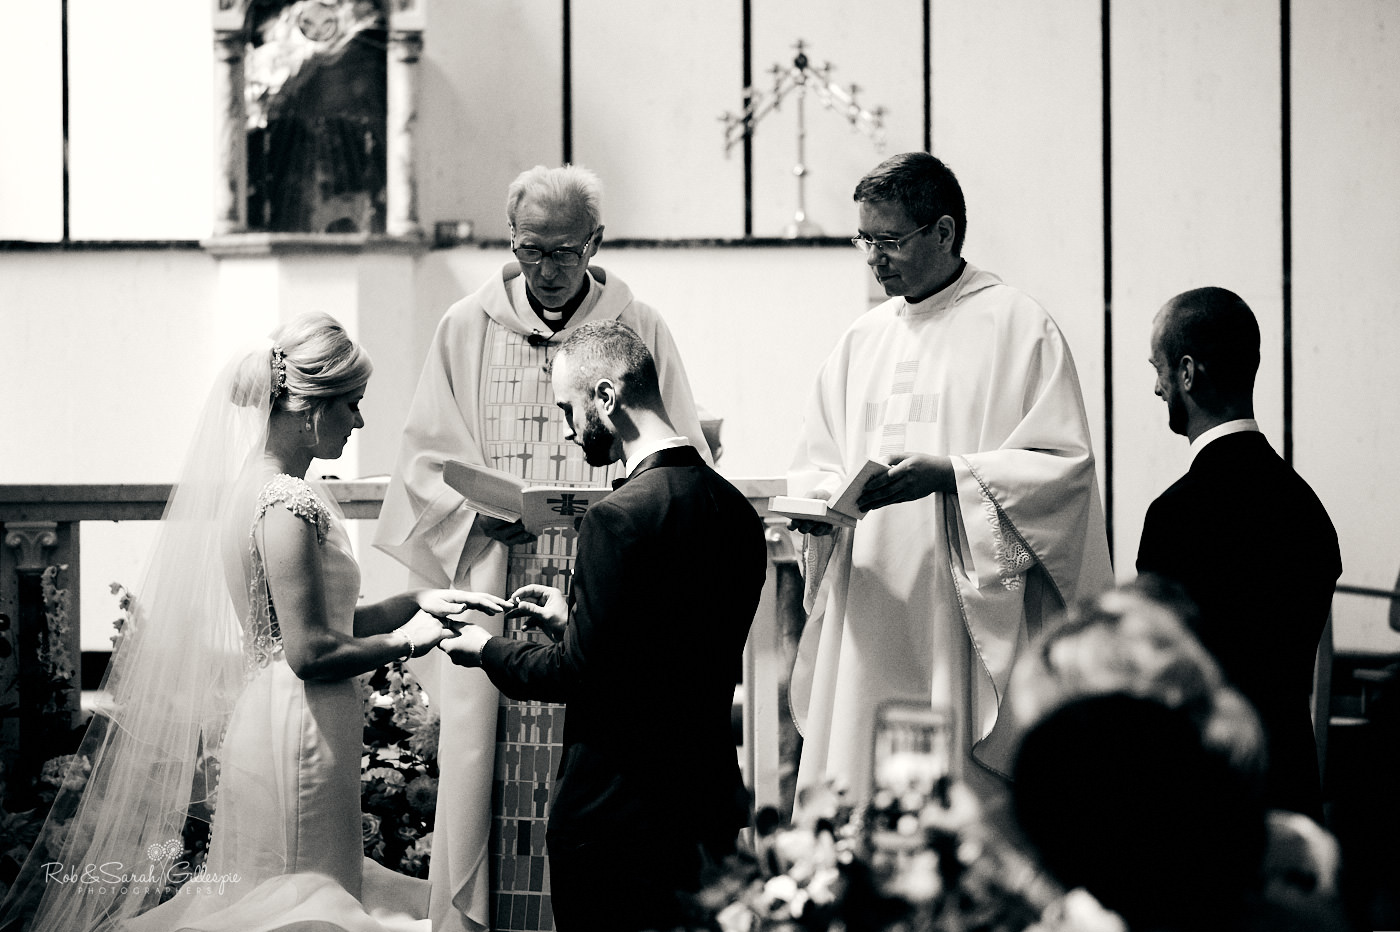 Bride and groom exchange wedding rings at St Anne's Catholic church in Birmingham